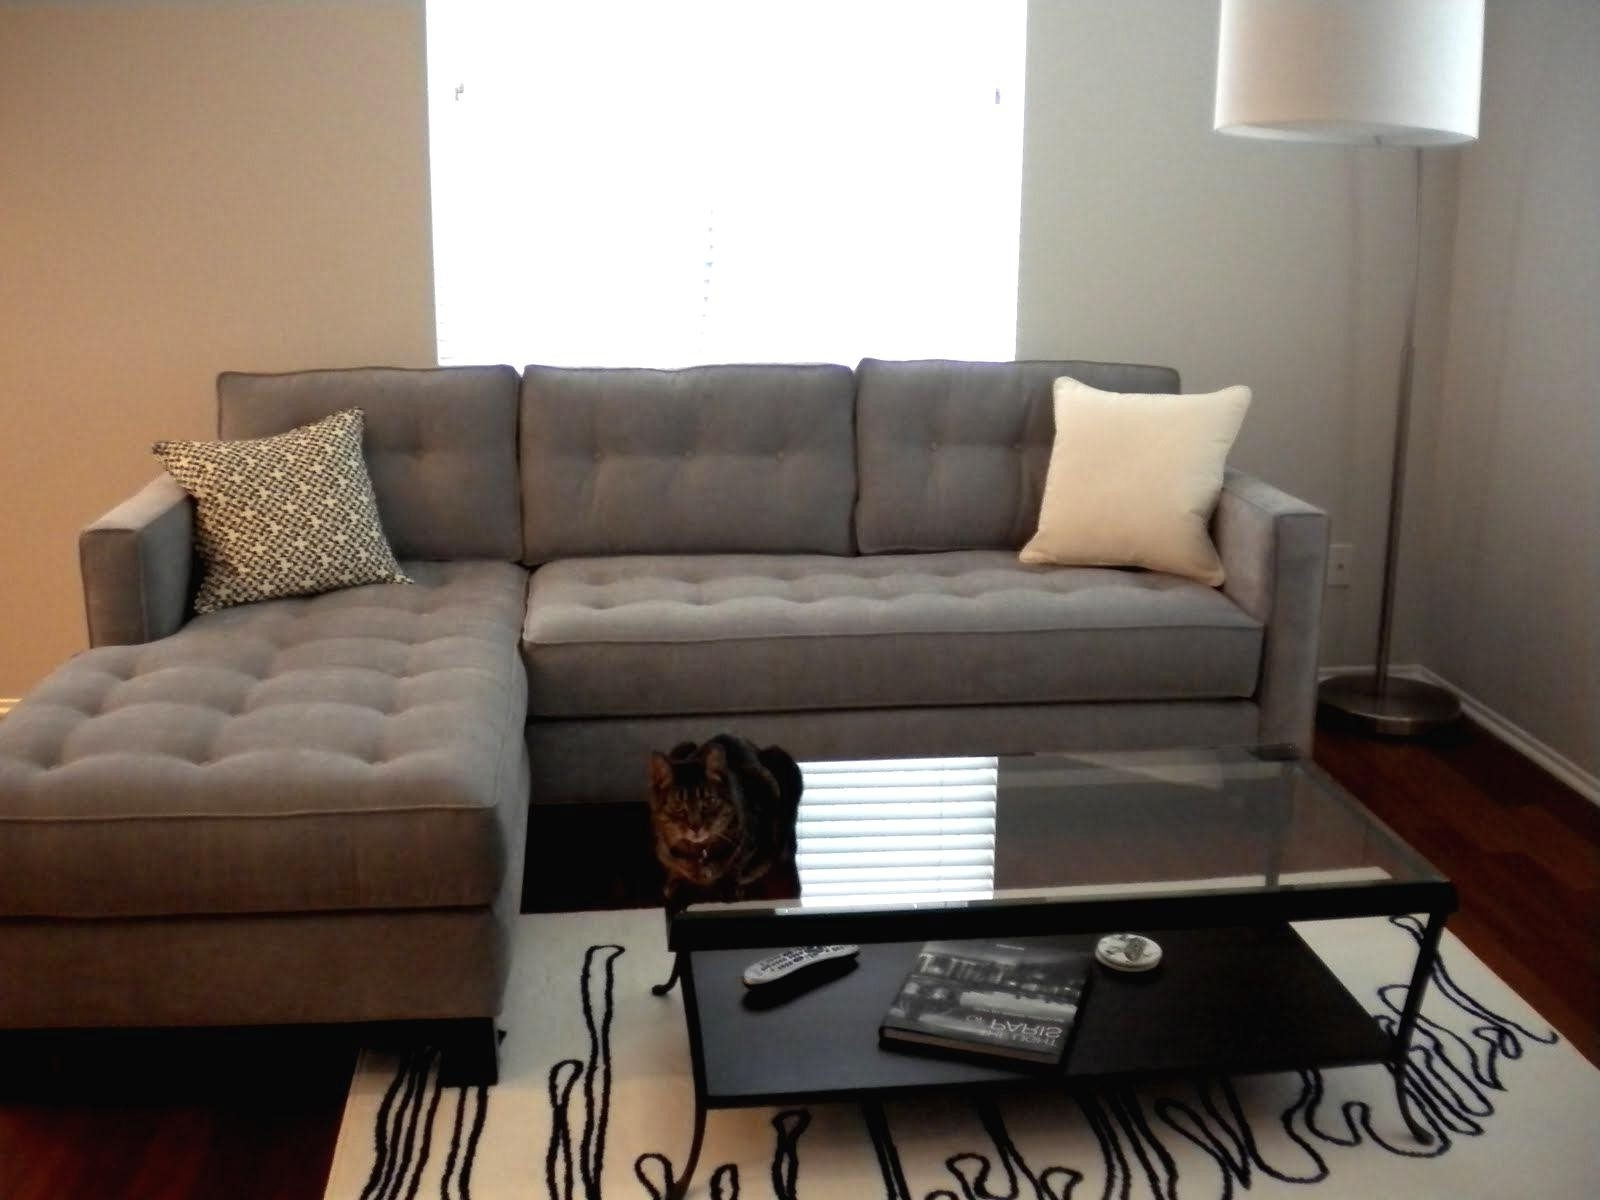 Kmart Furniture Sale (Gallery 2 of 20)